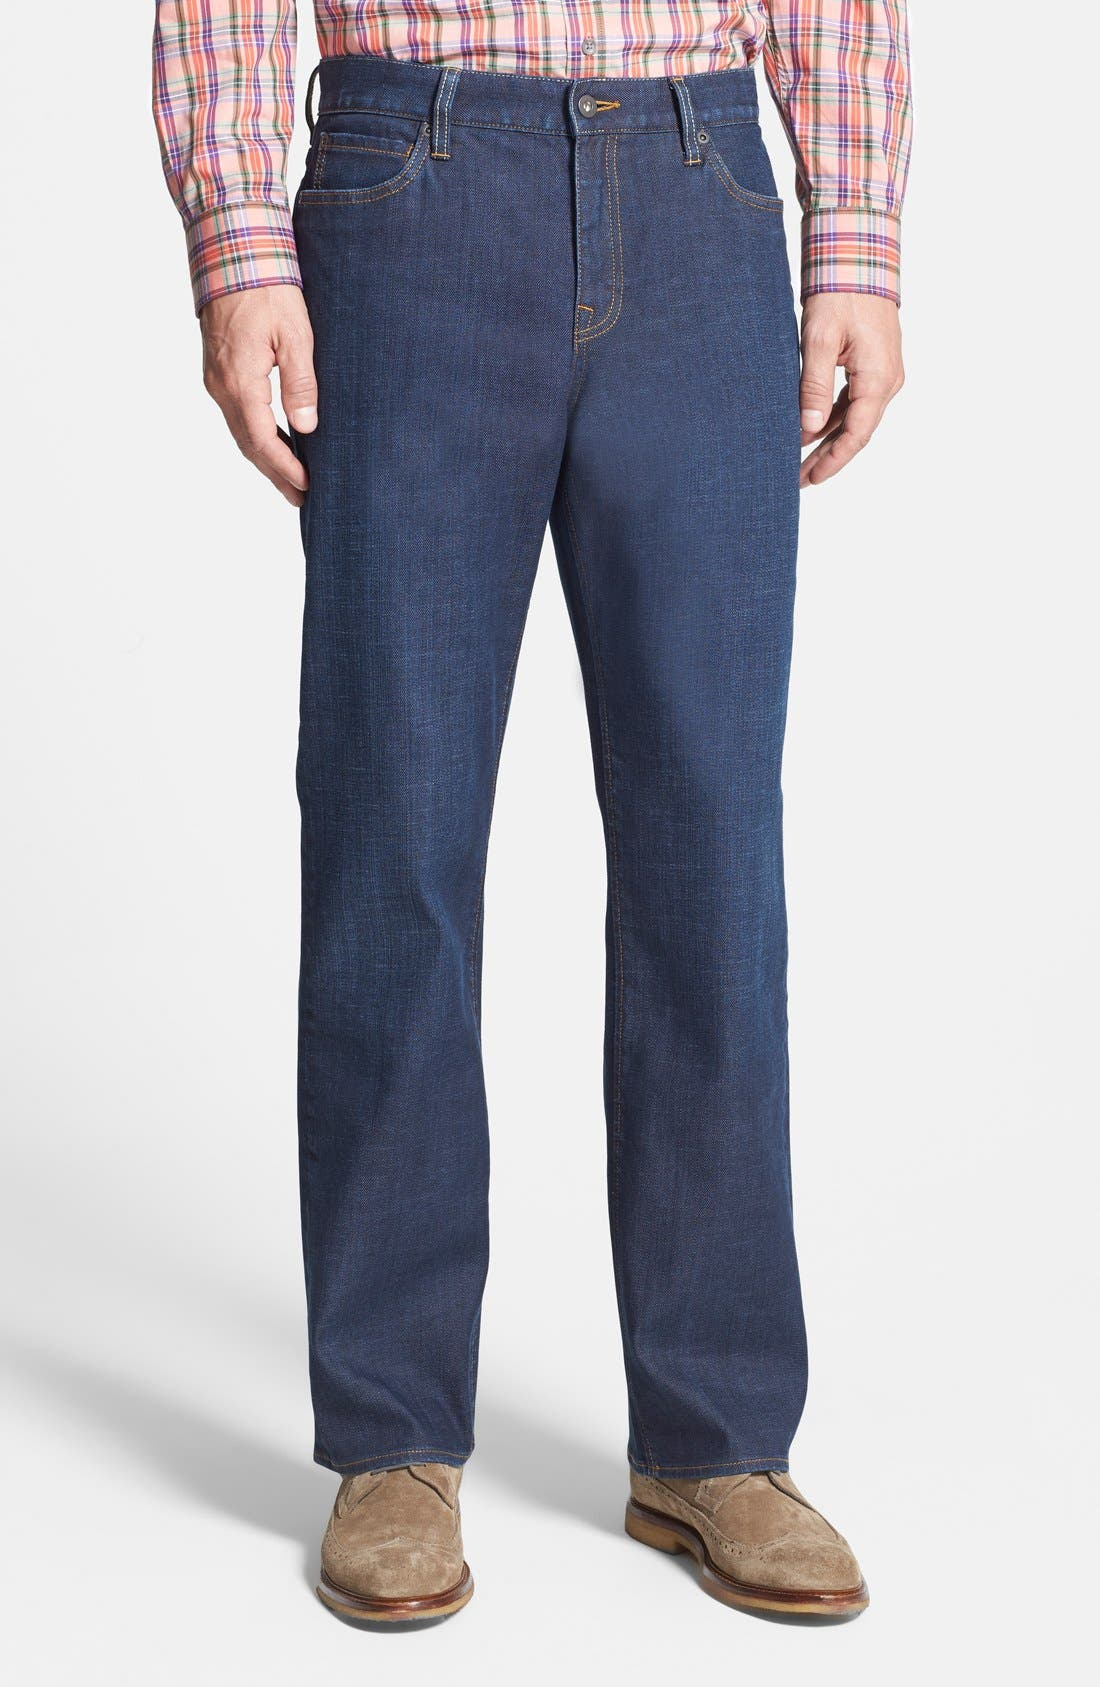 Greenwood Relaxed Fit Jeans,                             Main thumbnail 2, color,